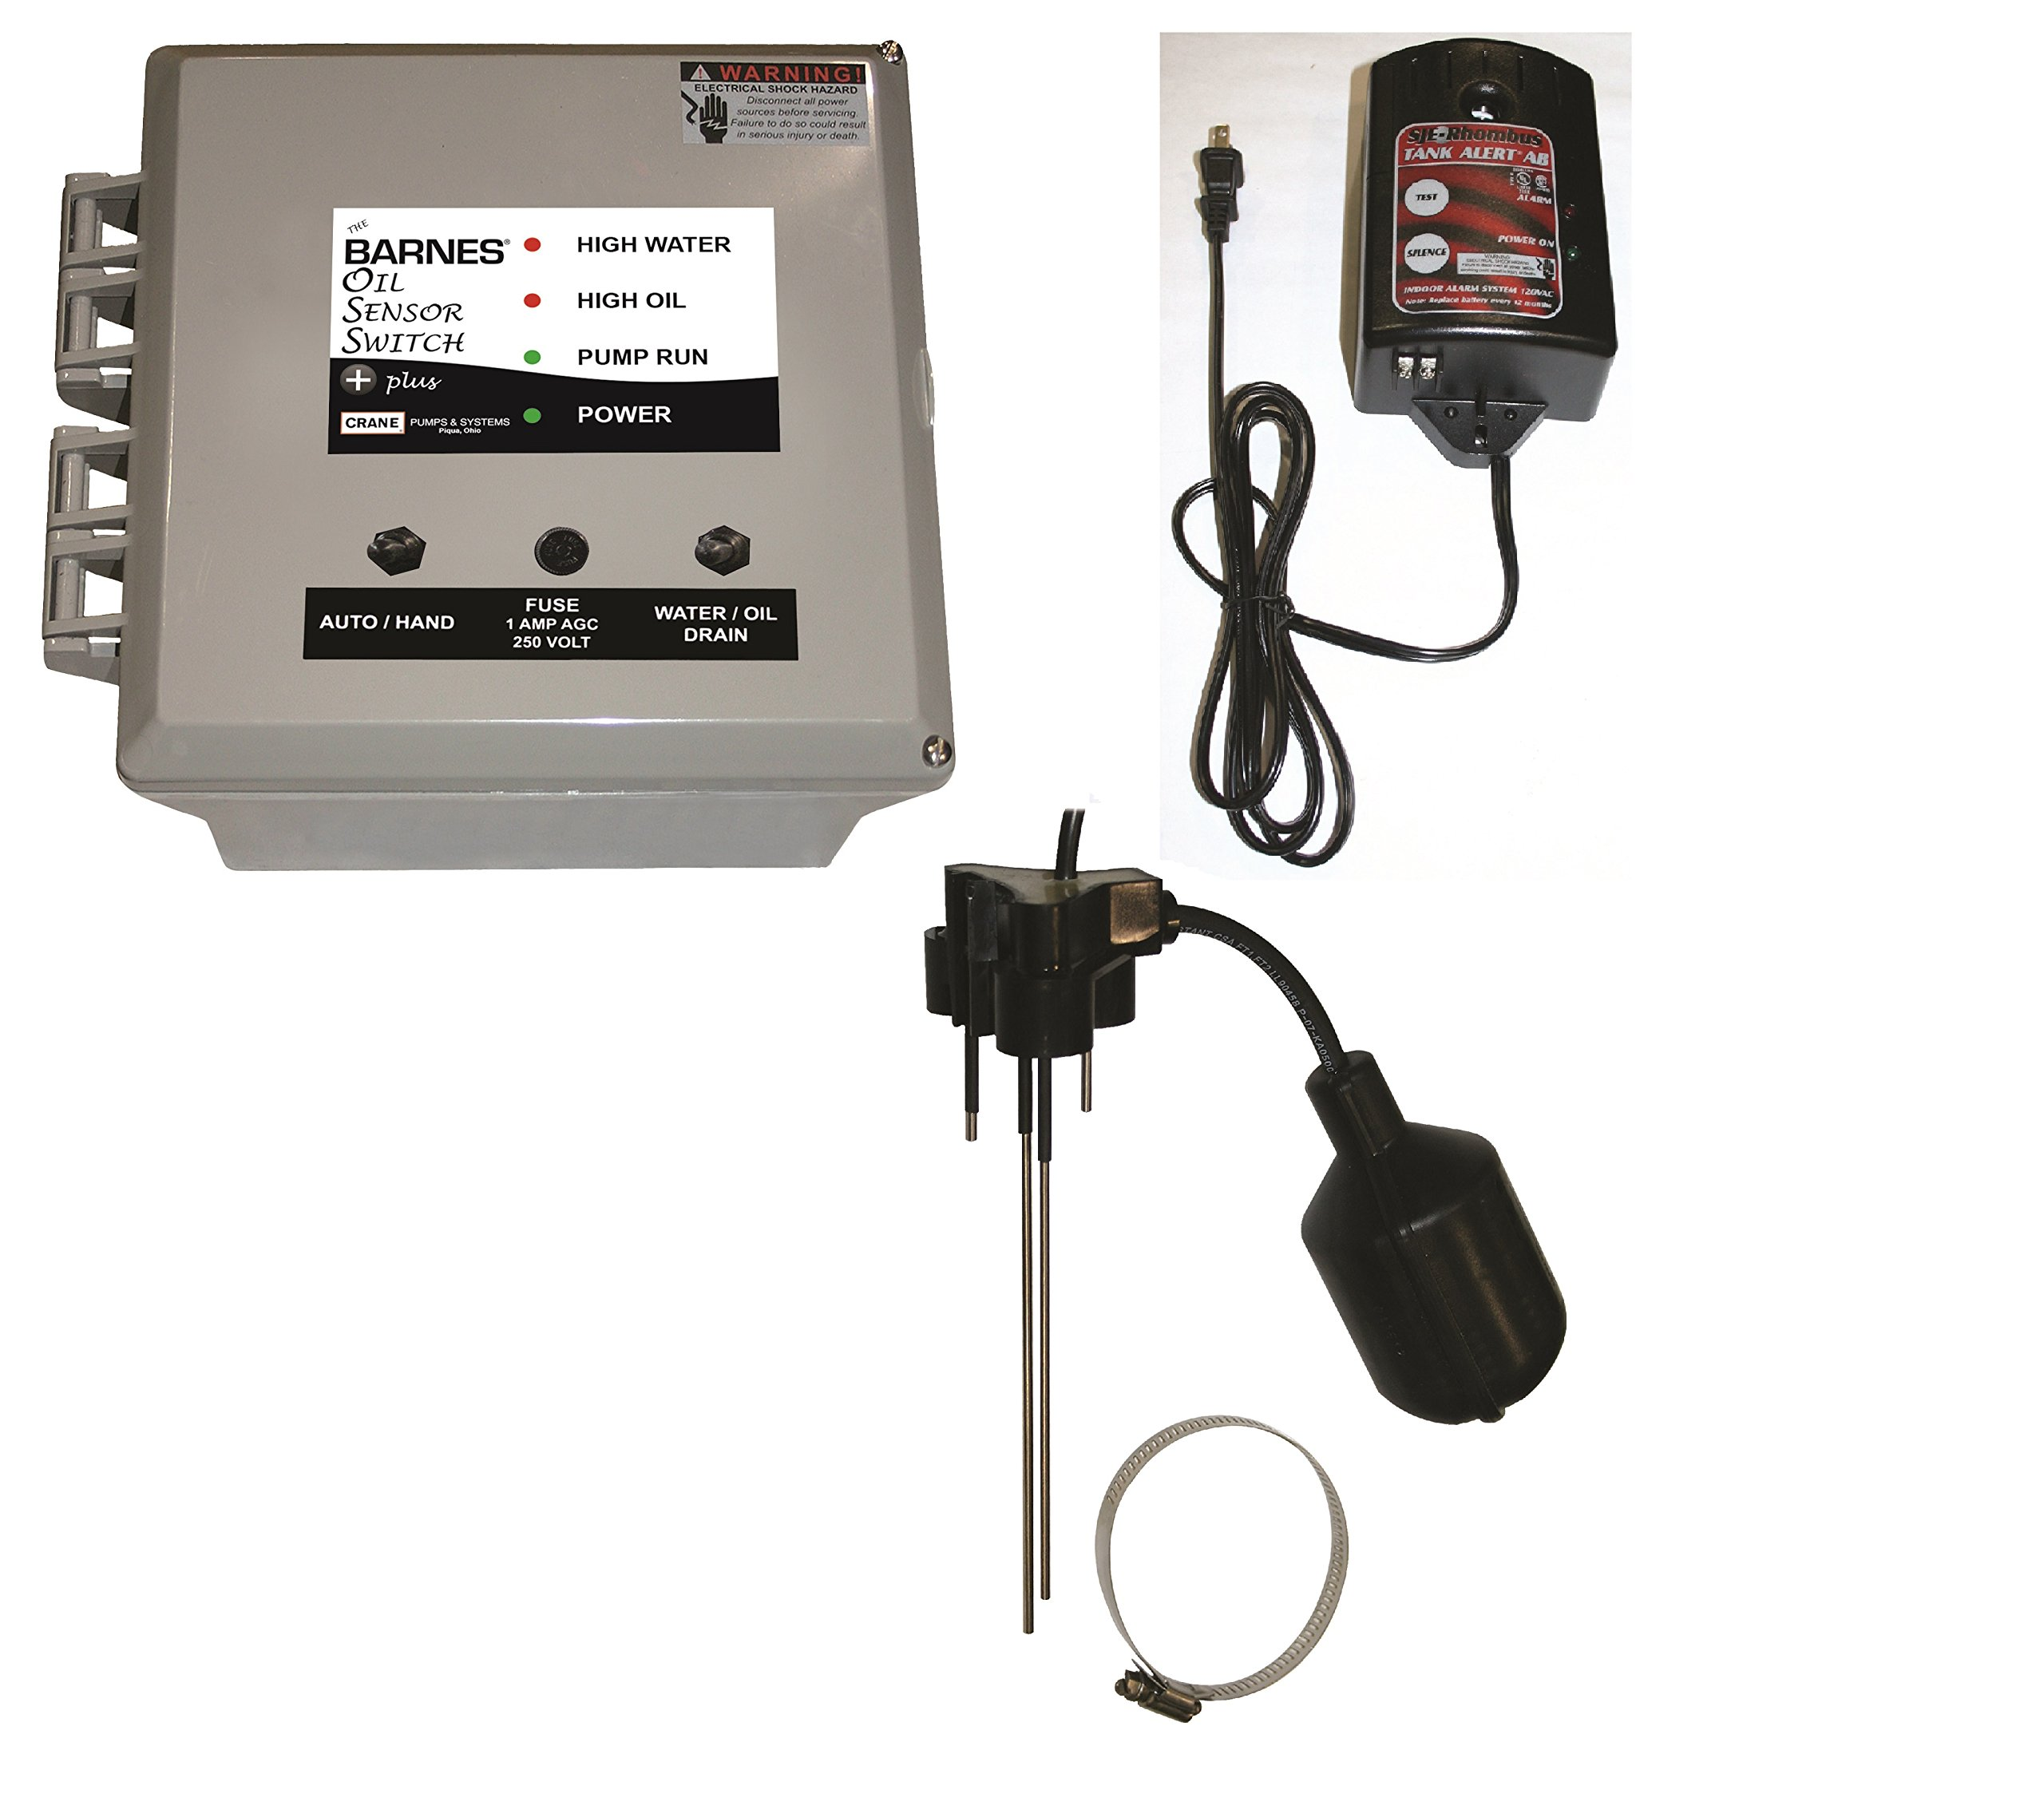 Barnes 137040 BOSS PLUS Series Oil Sensor Switch with High Water Alarm, 120V, 1 Phase, 15 Amp, NEMA 1 Enclosure